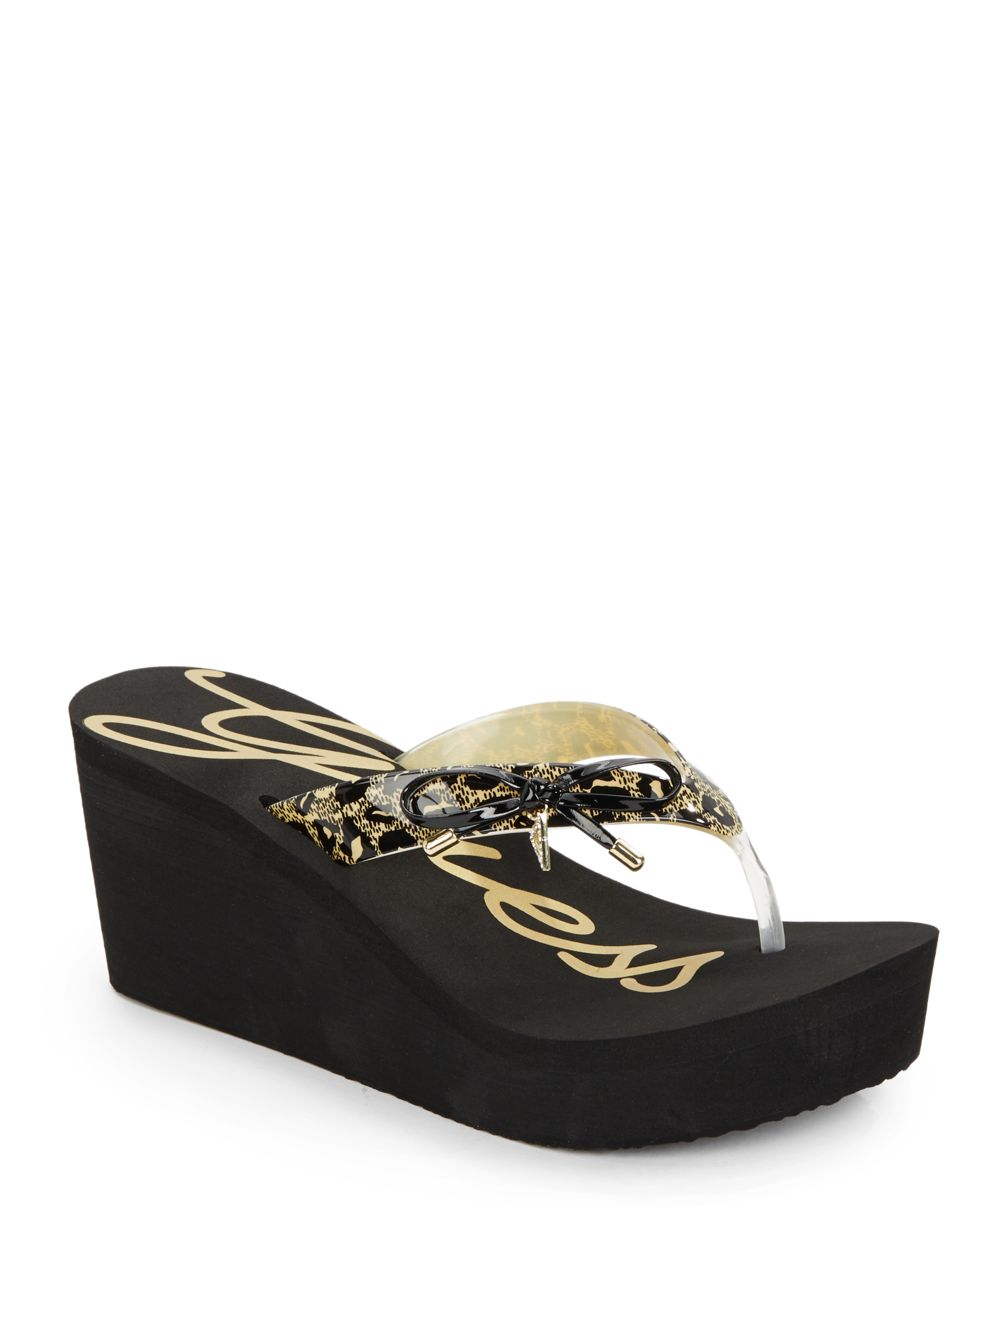 0d2121e01 Lyst - Guess Syona Leopard-Print Bow Platform Wedge Sandals in Black